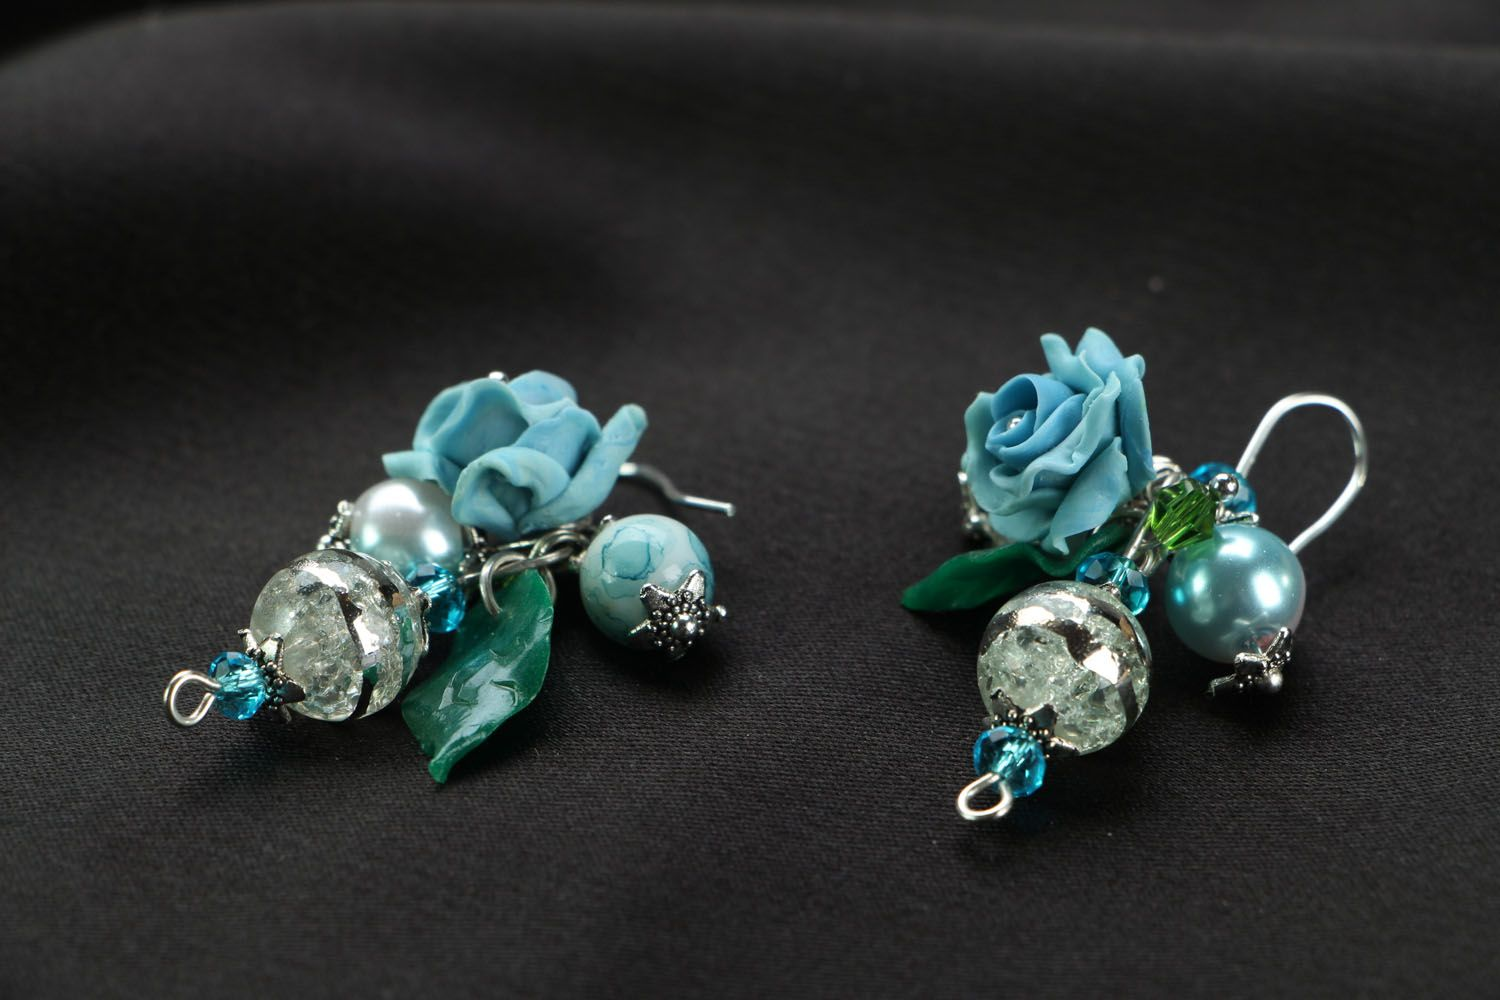 Earrings with charms Blue Roses photo 2